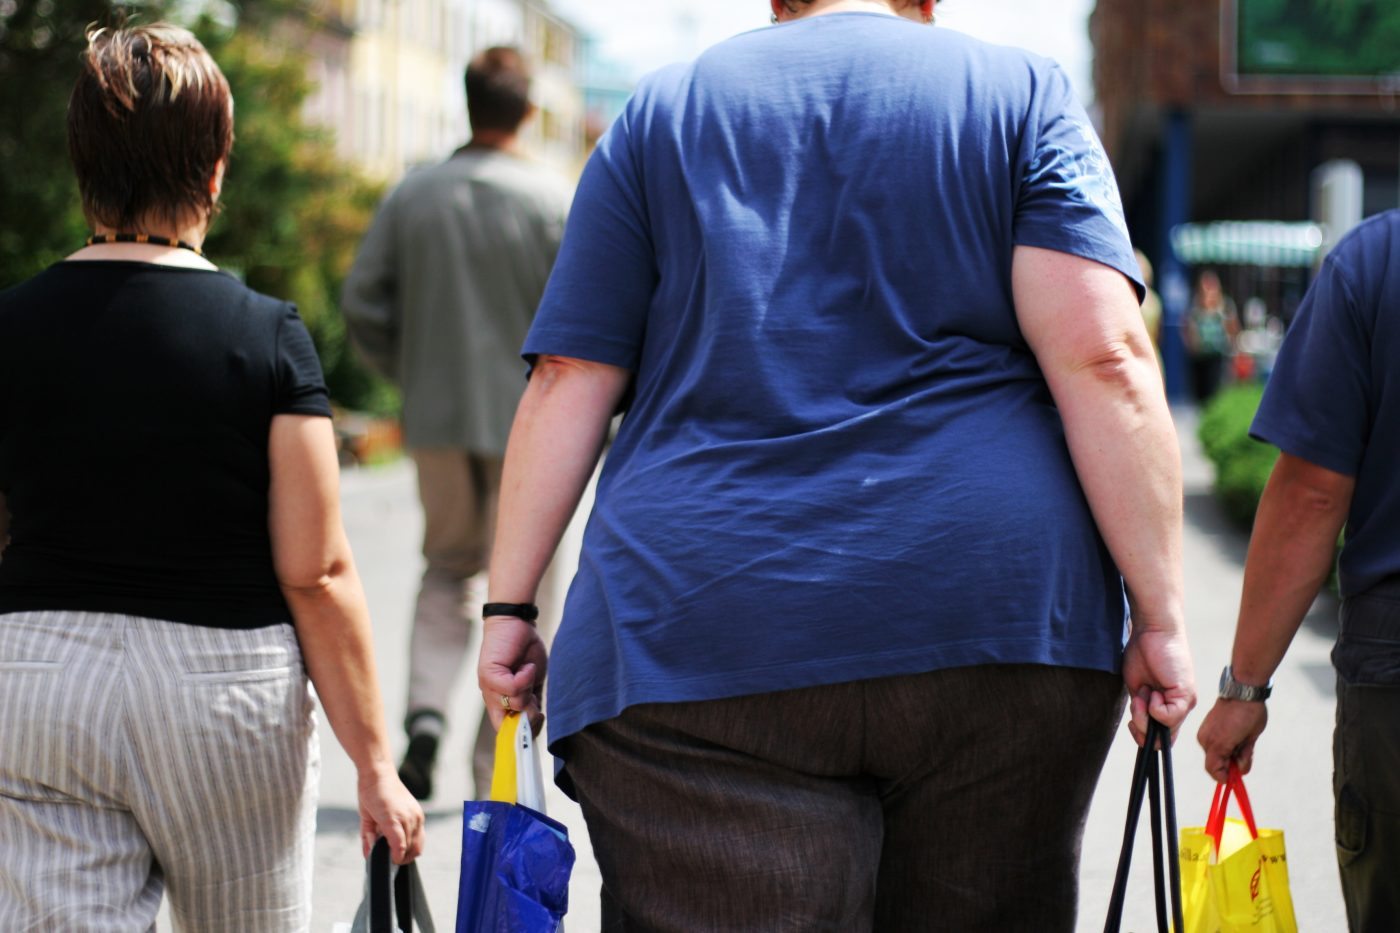 Liraglutide Therapy Found to Promote Weight Loss in Obese Patients with Type 2 Diabetes